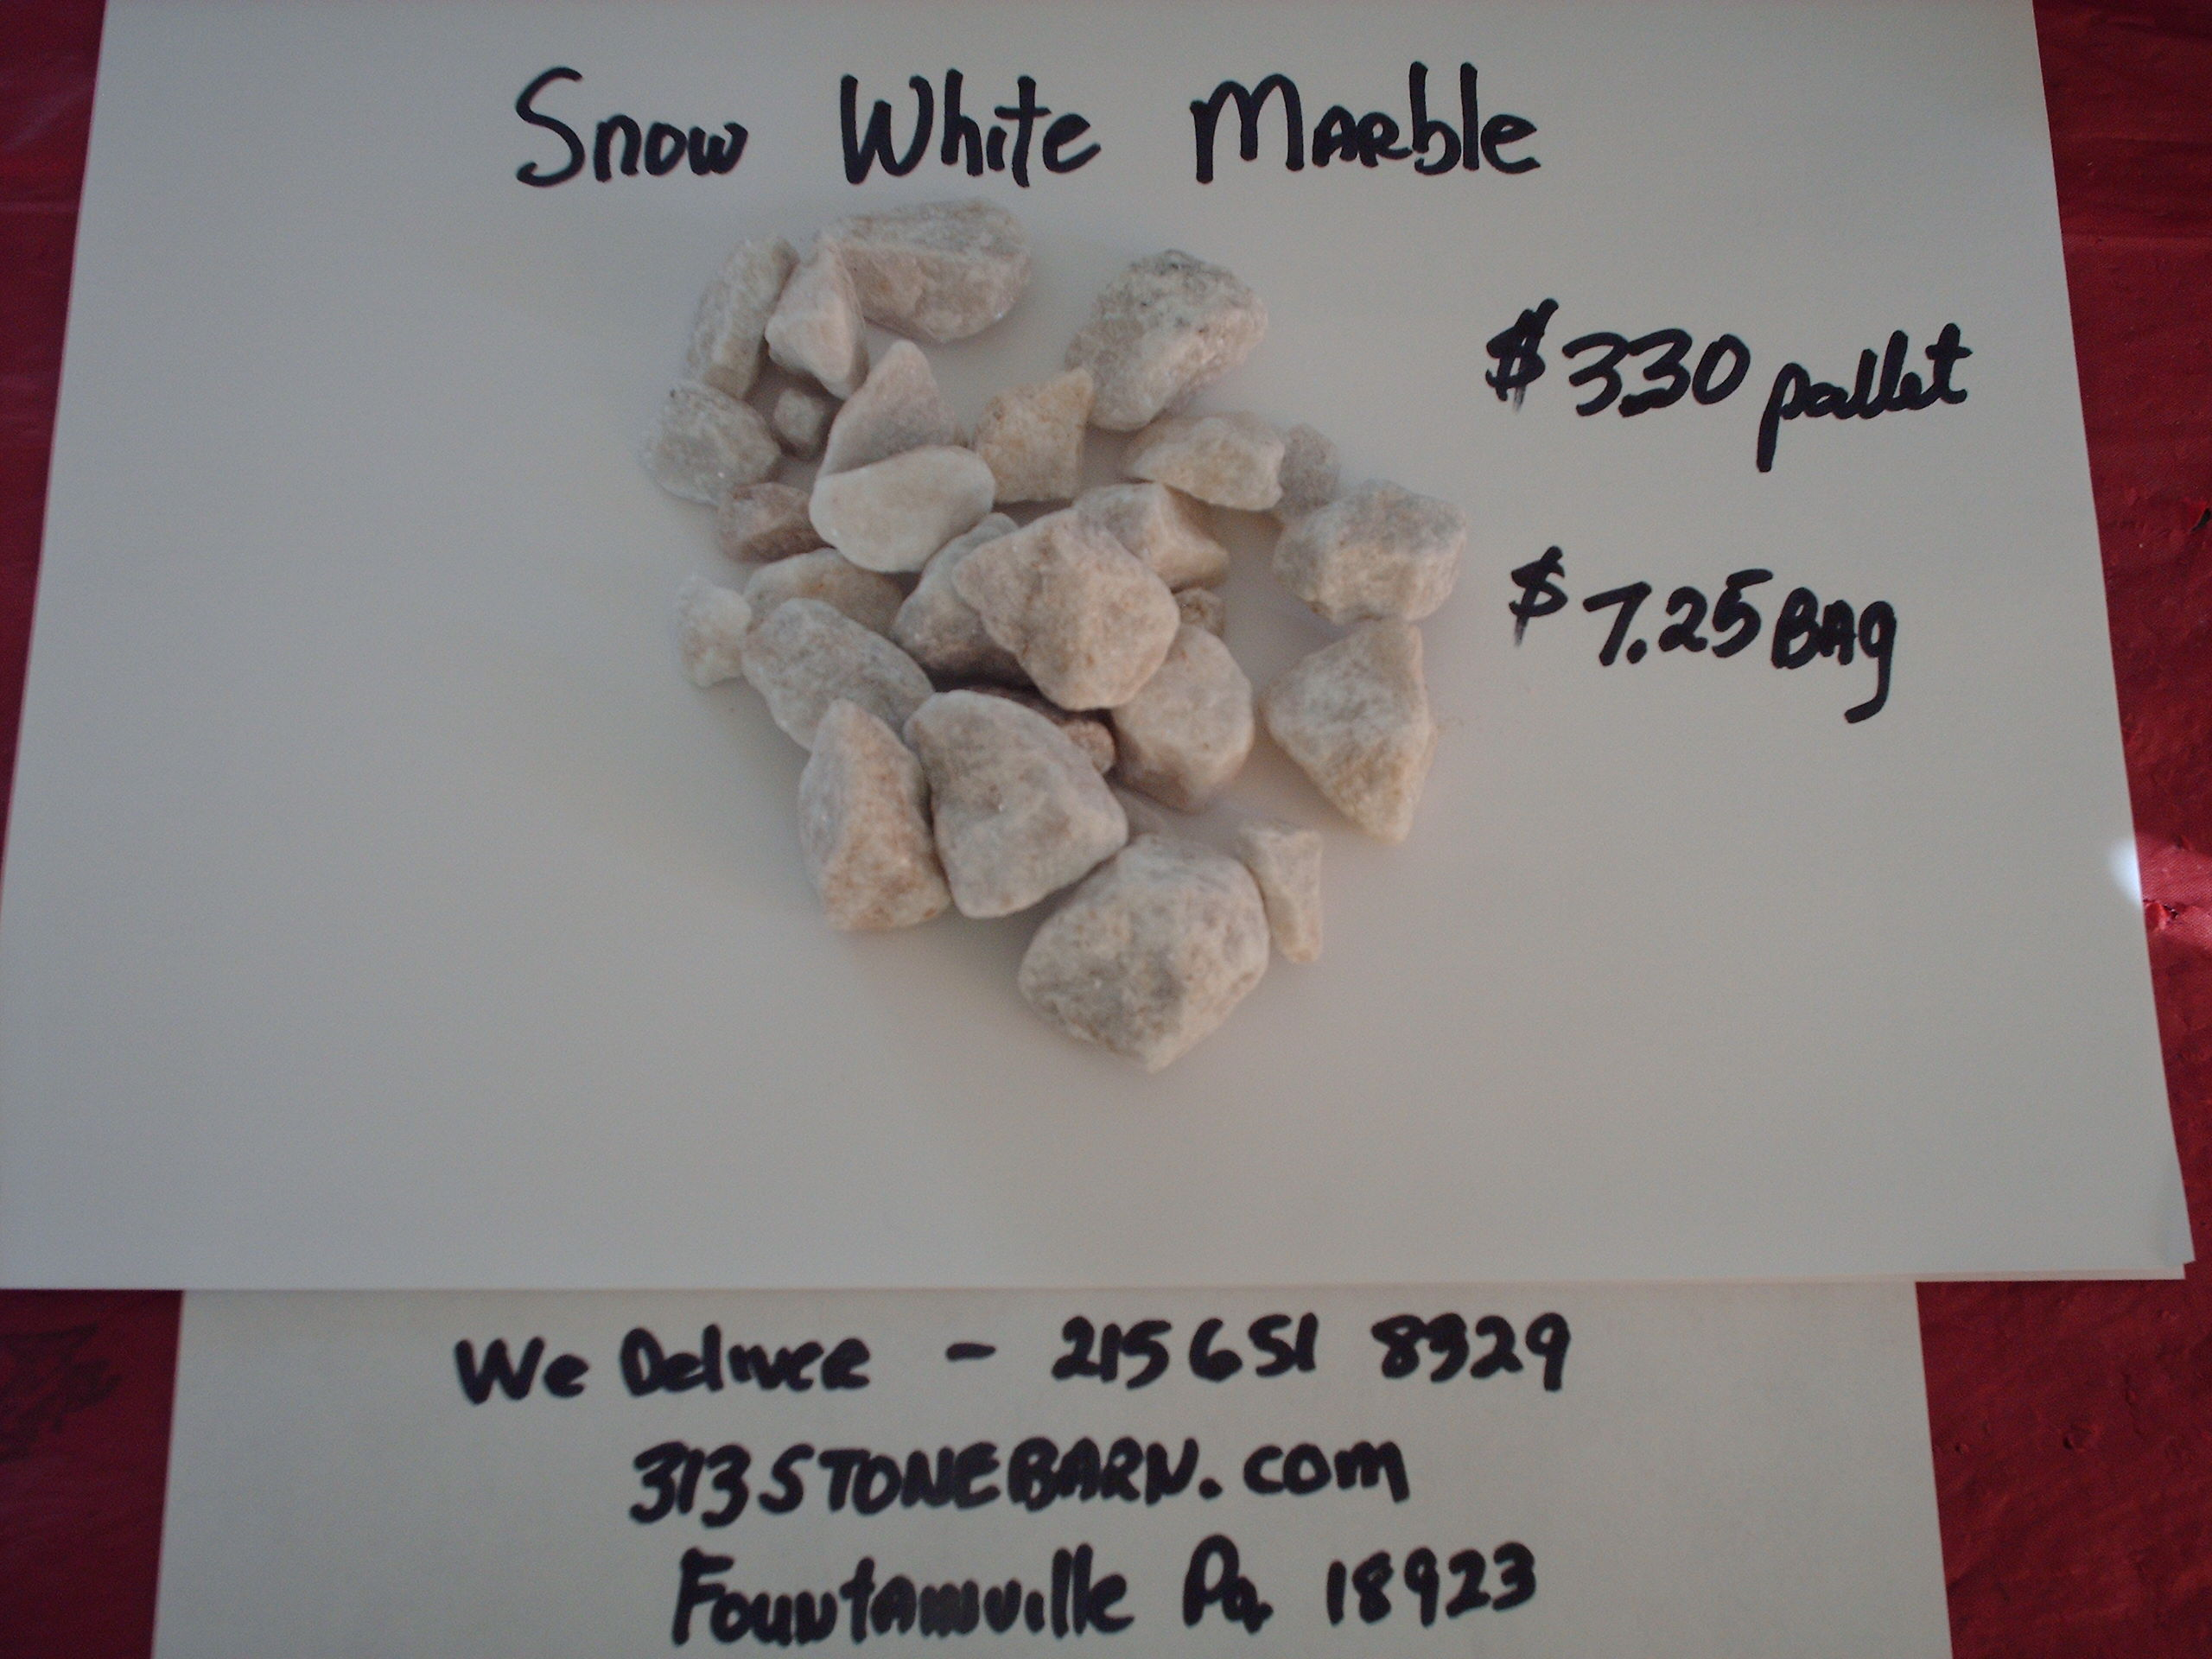 We deliver pallets of these Snow White Marble Chips.